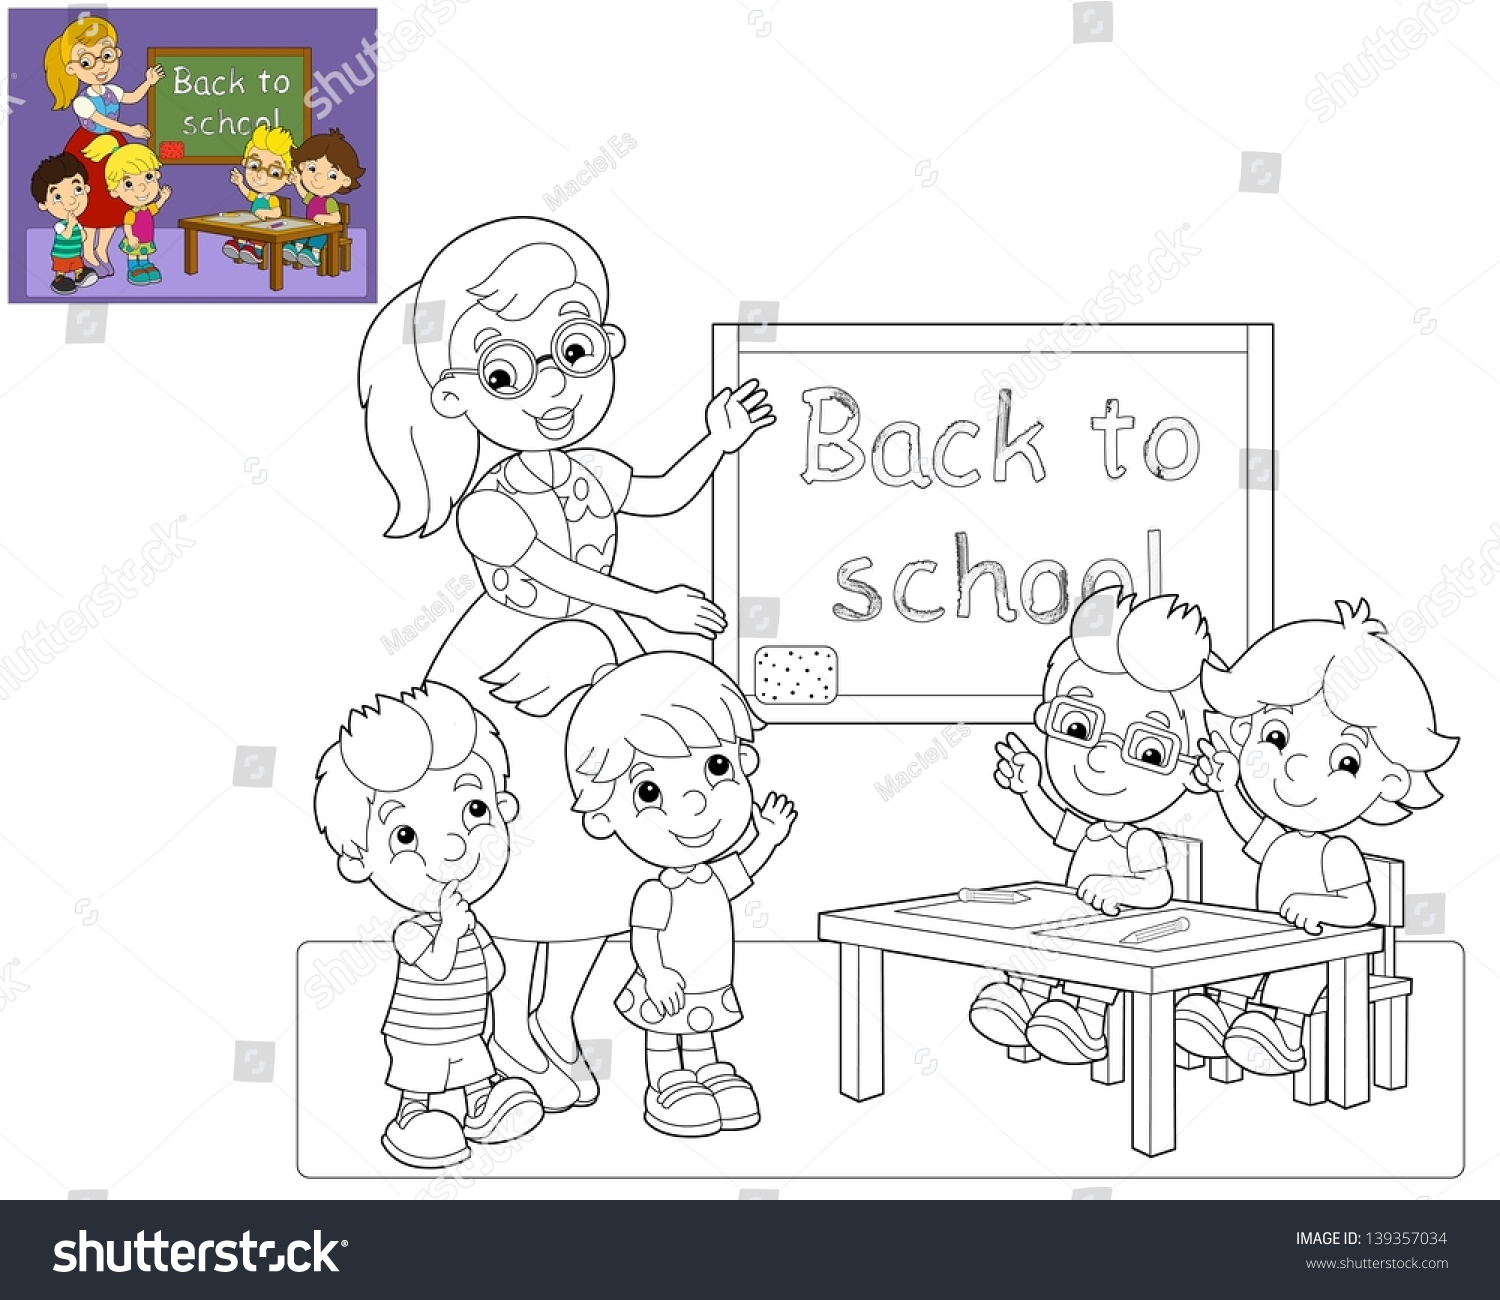 the coloring page the classroom illustration for the children